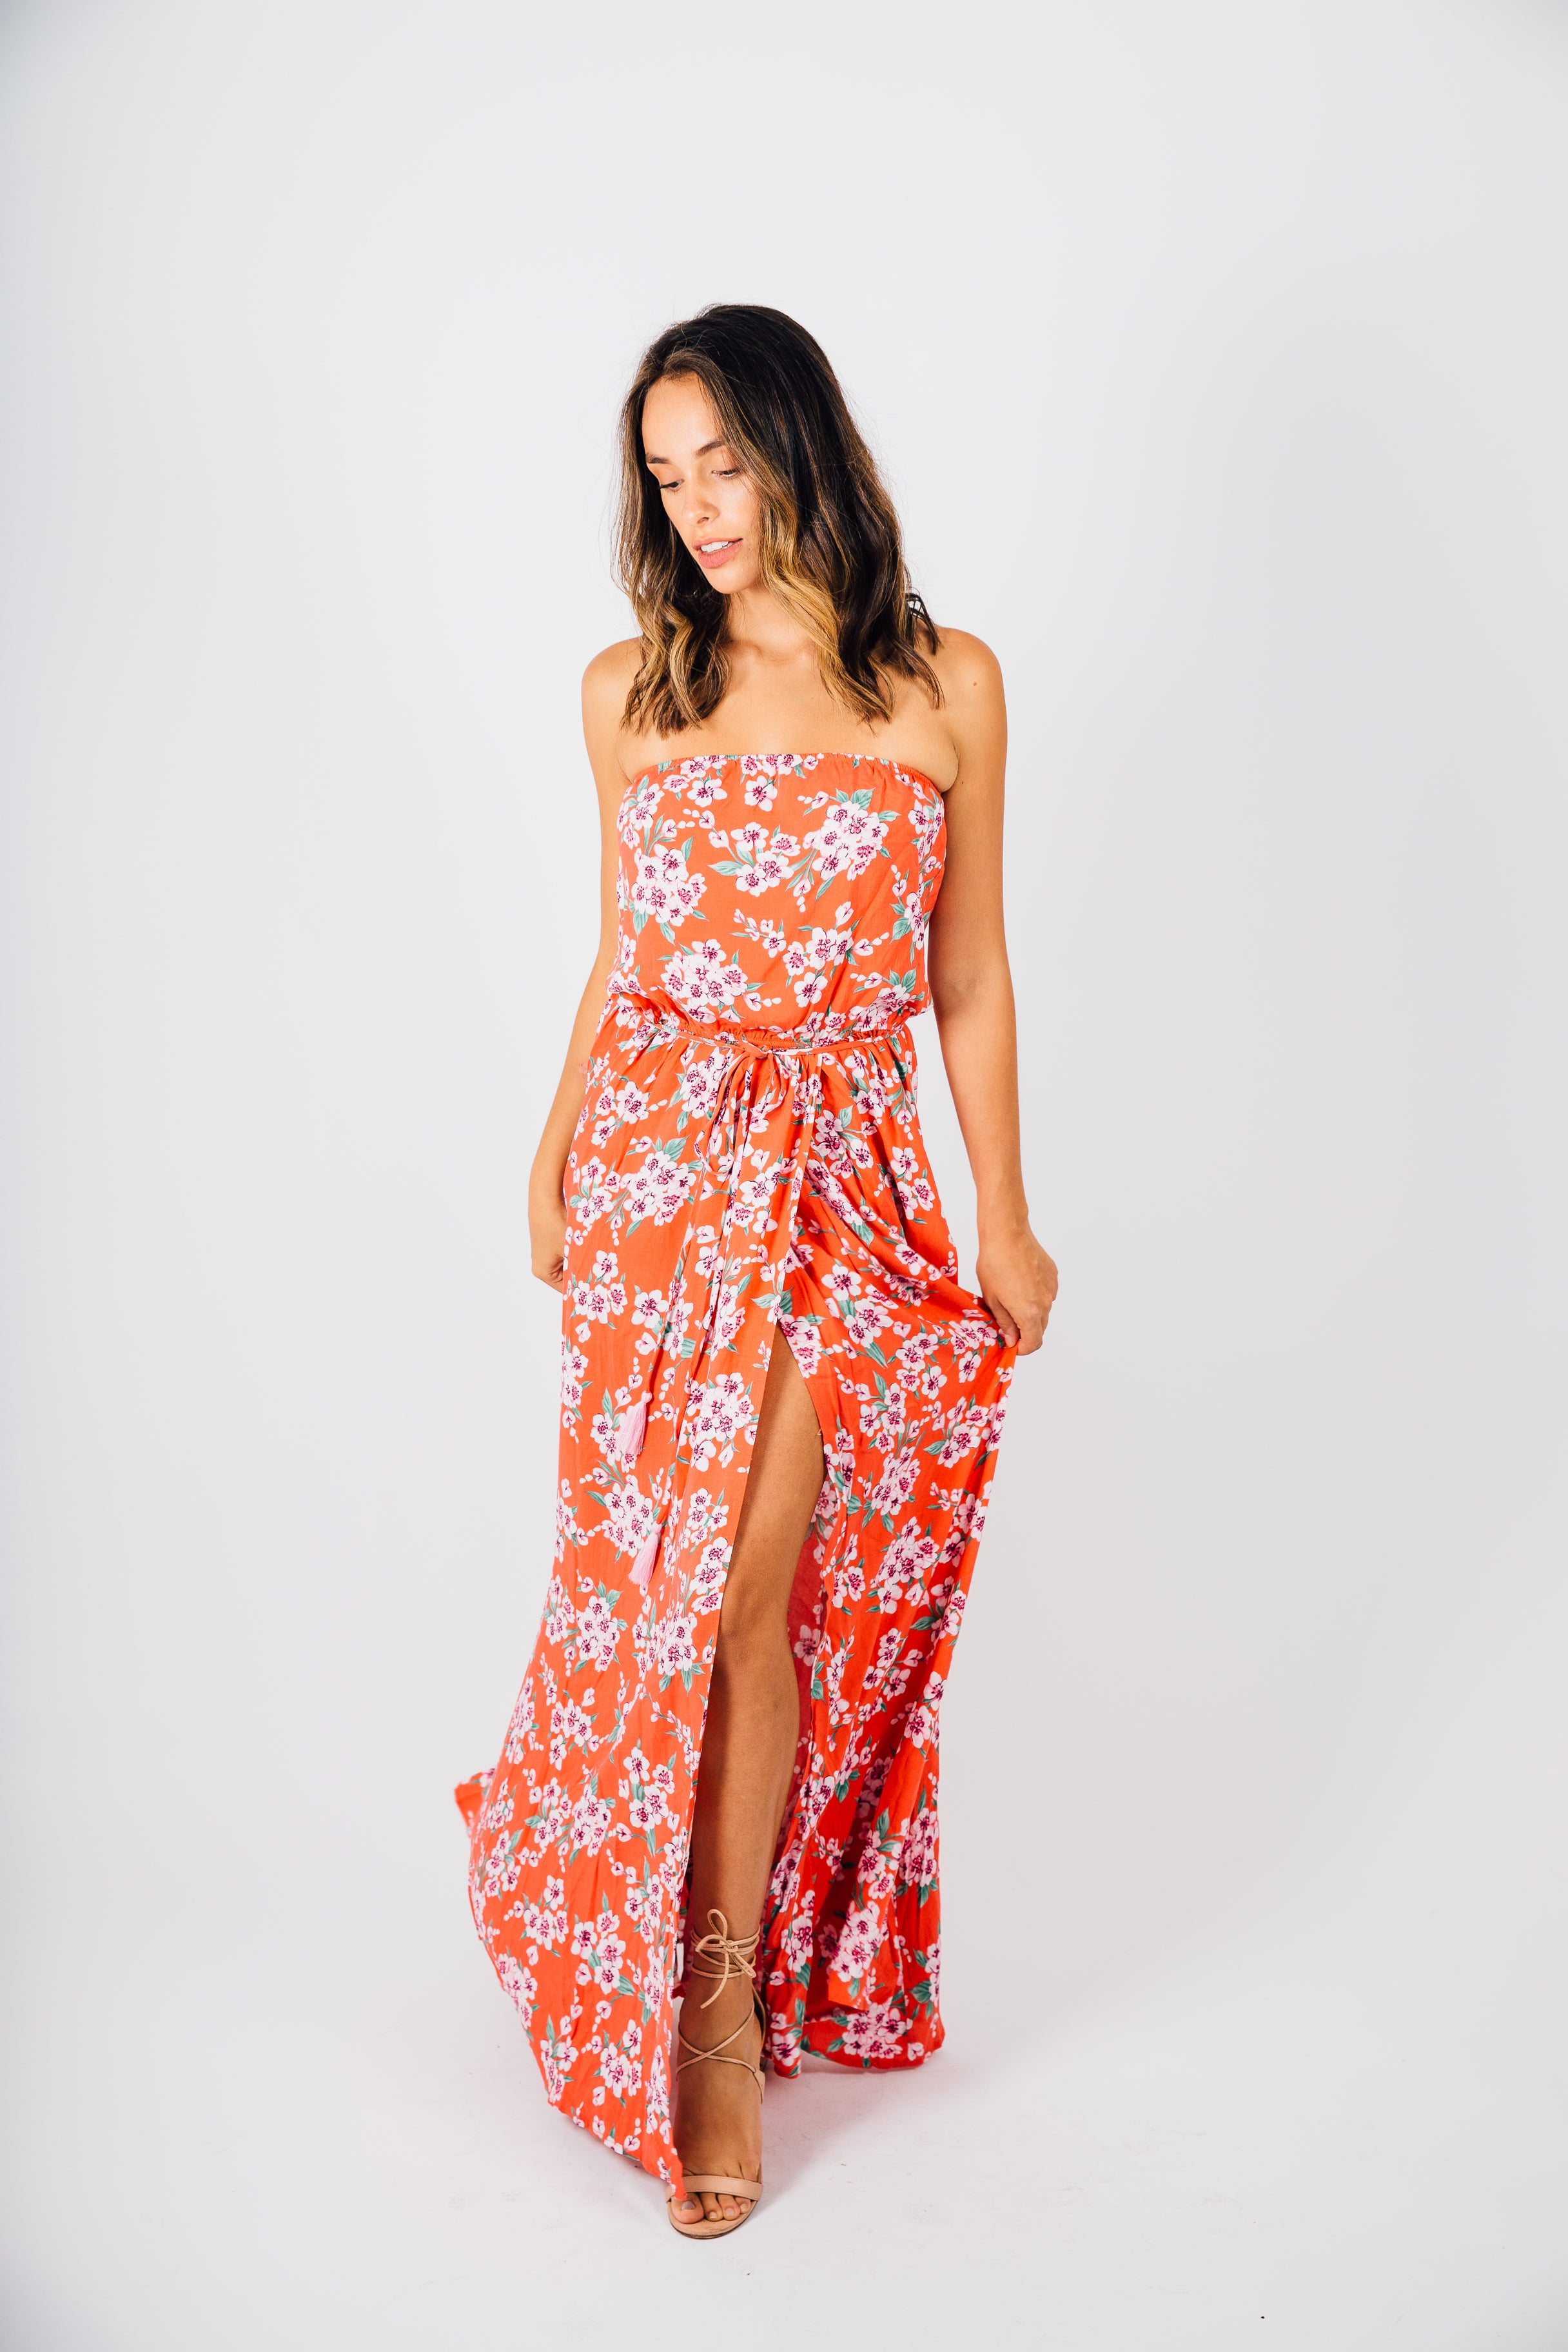 Strapless Belted Red Floral Maxi